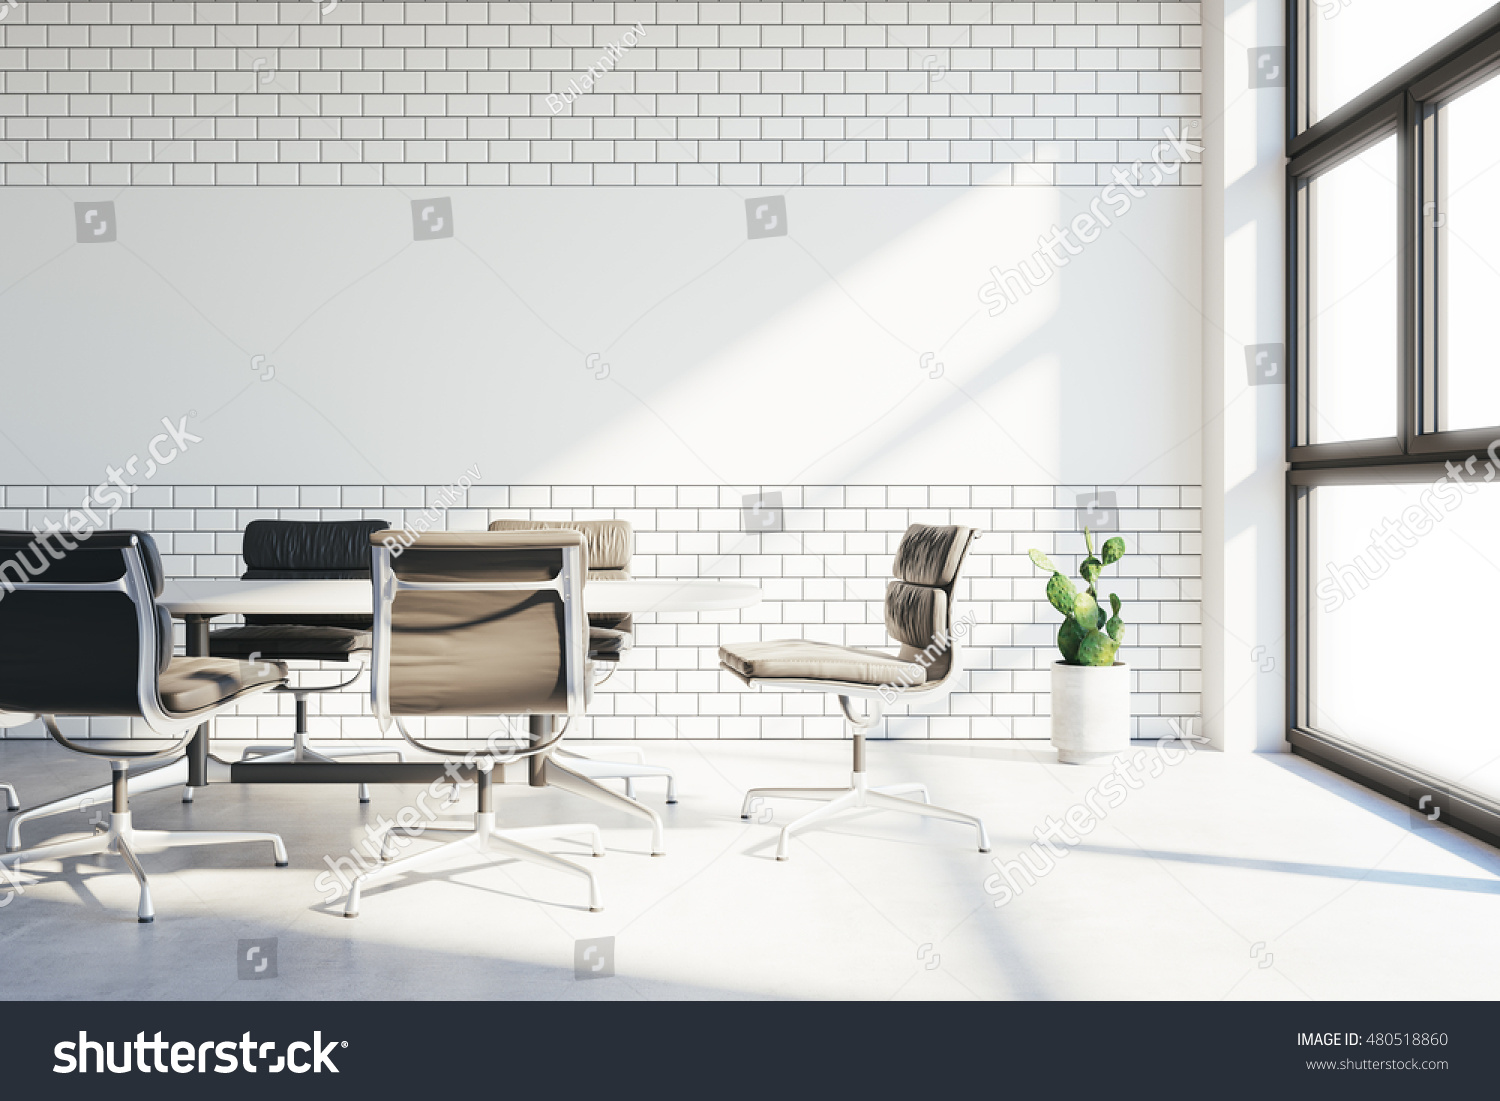 office tiles. Conference Room In Modern Office With White Tiles And Chalkboard For Drawings On Wall. Vintage